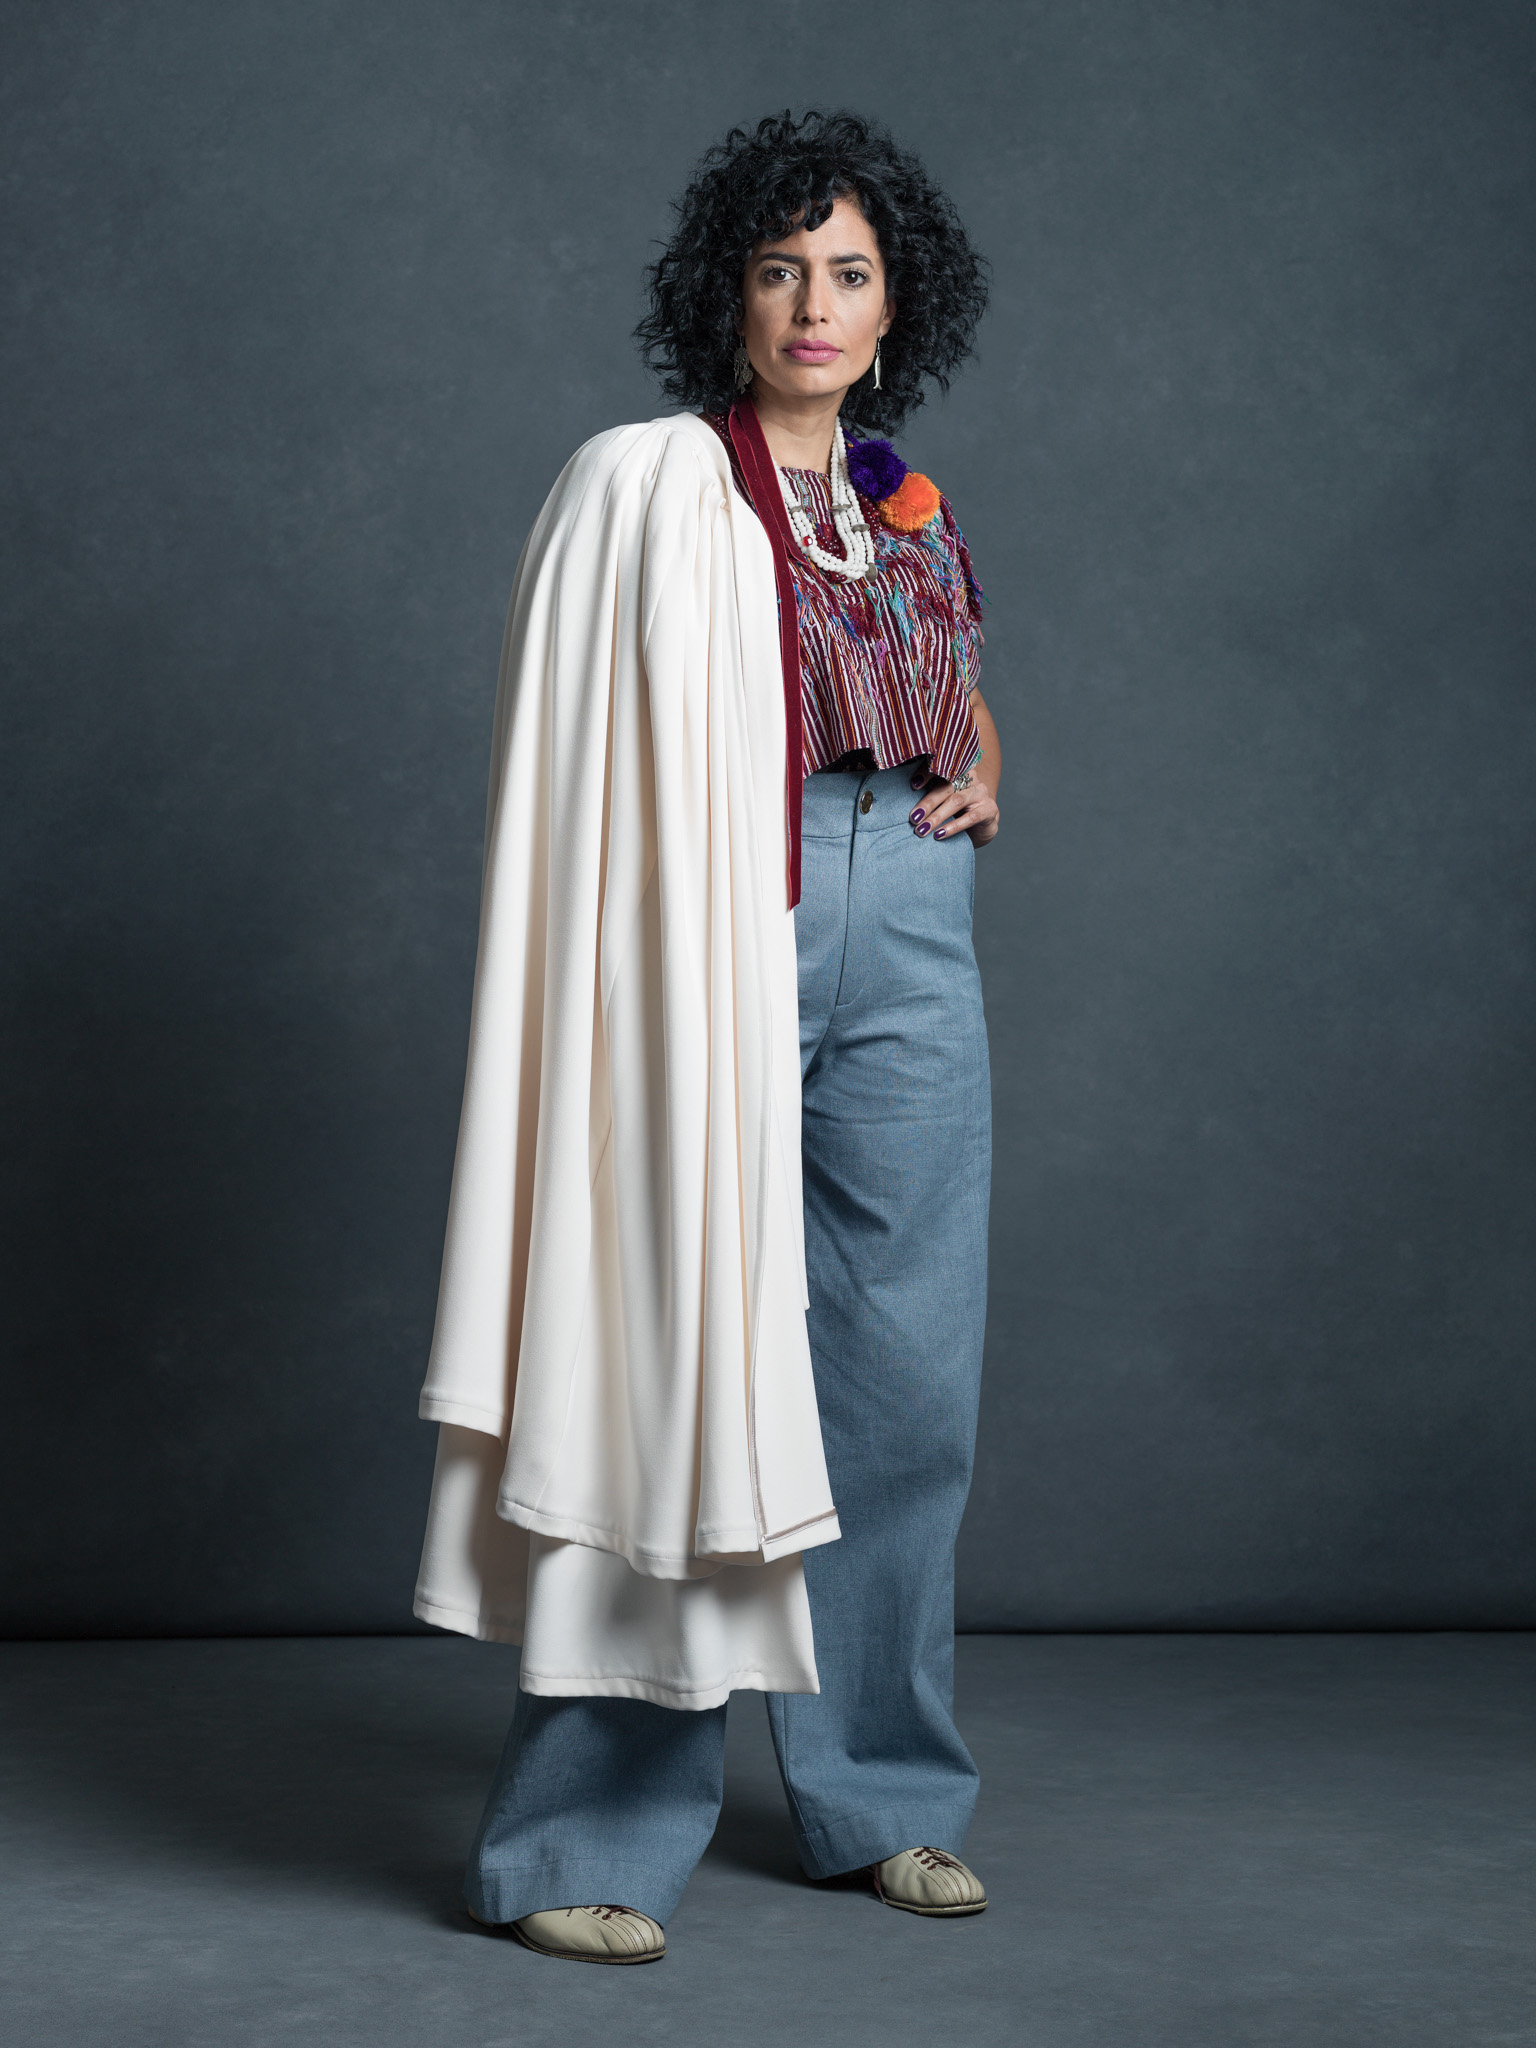 The Legacy Innovator - Maria Cecilia Diaz in the Janis Pants and Gloria Cape.